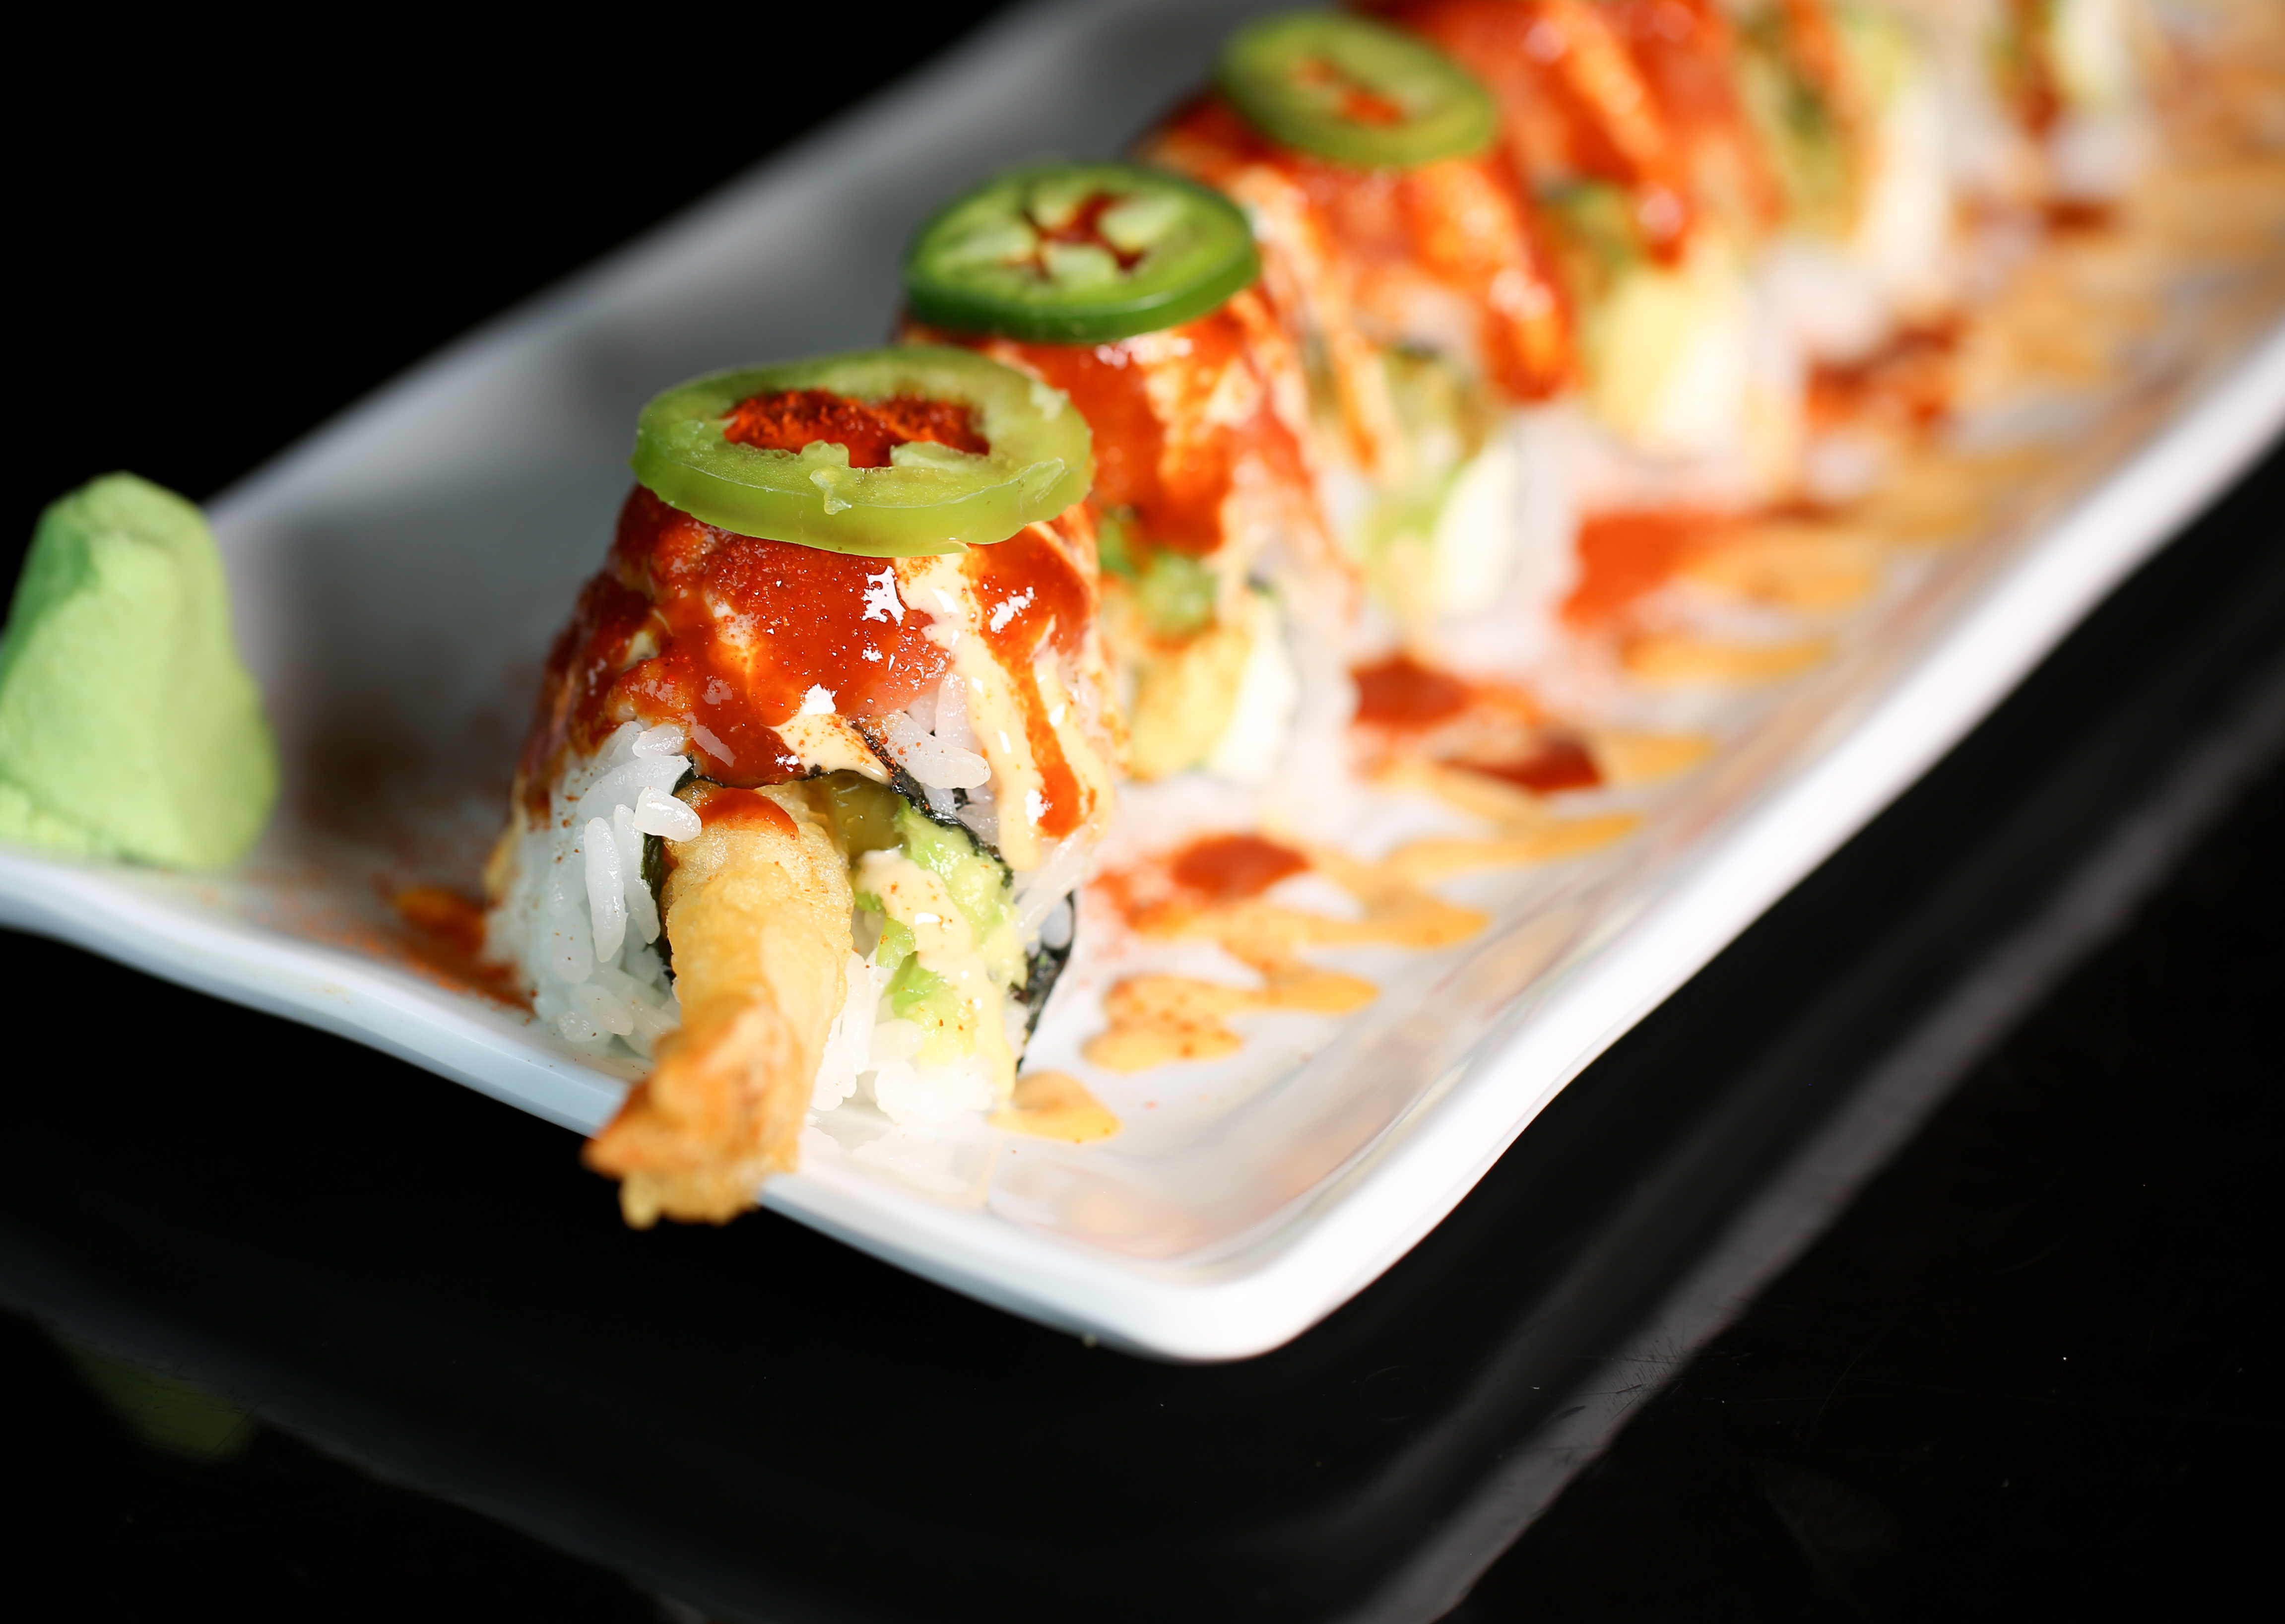 Sushi 2 by Lillipop 774A5666